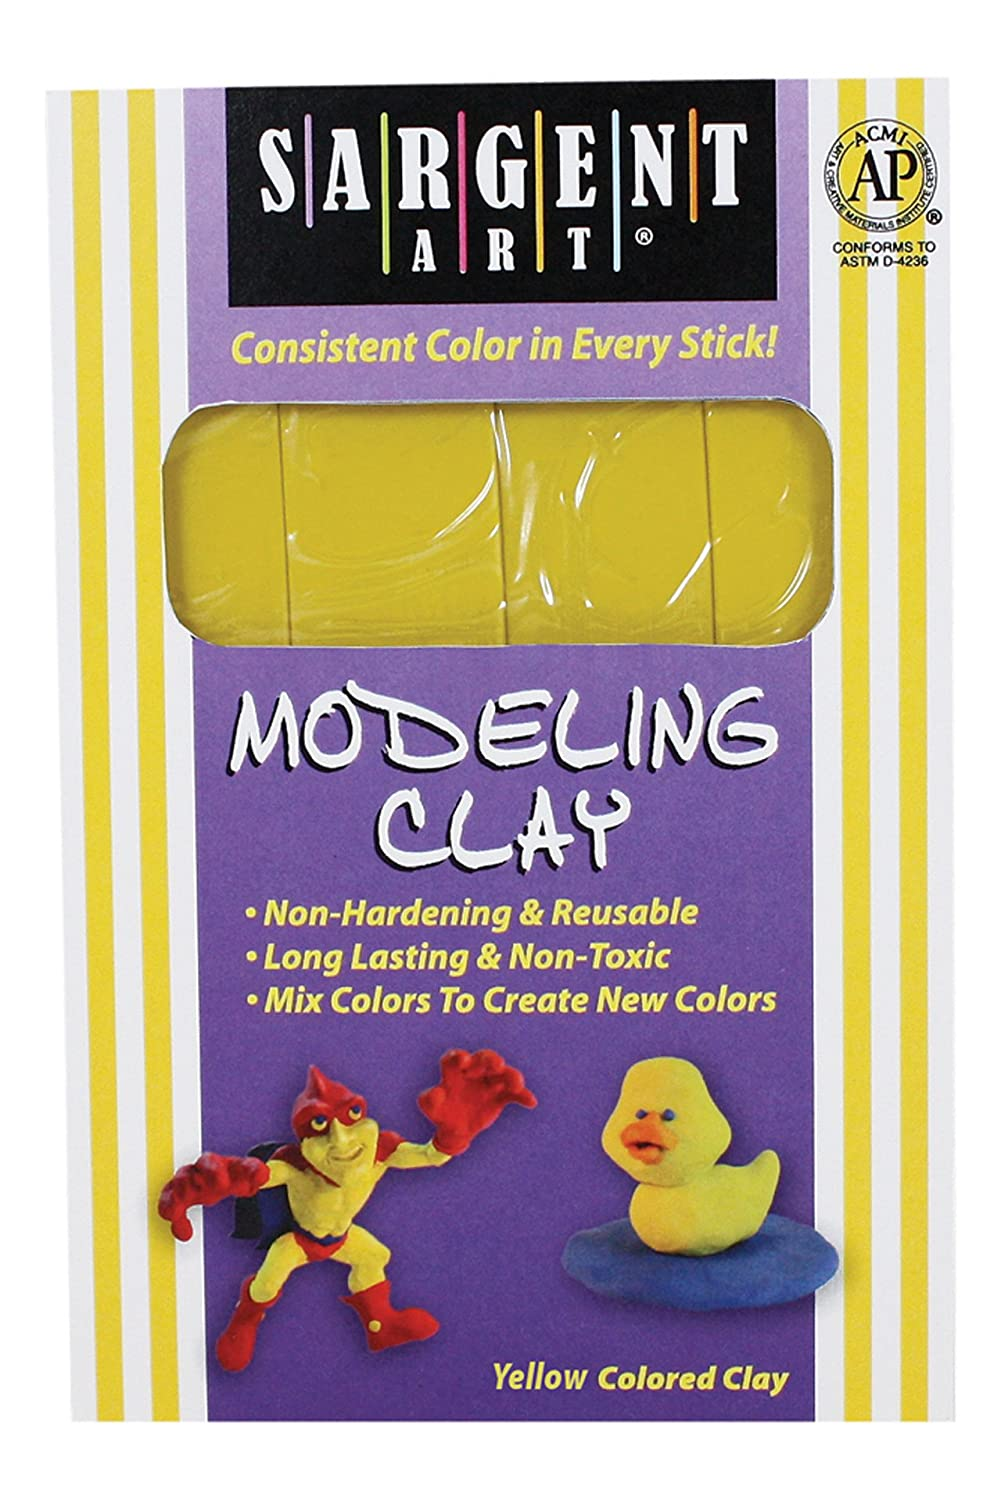 Sargent Art 22-4002 1-Pound Solid Color Modeling Clay, Yellow by Sargent Art B003FGVNPW